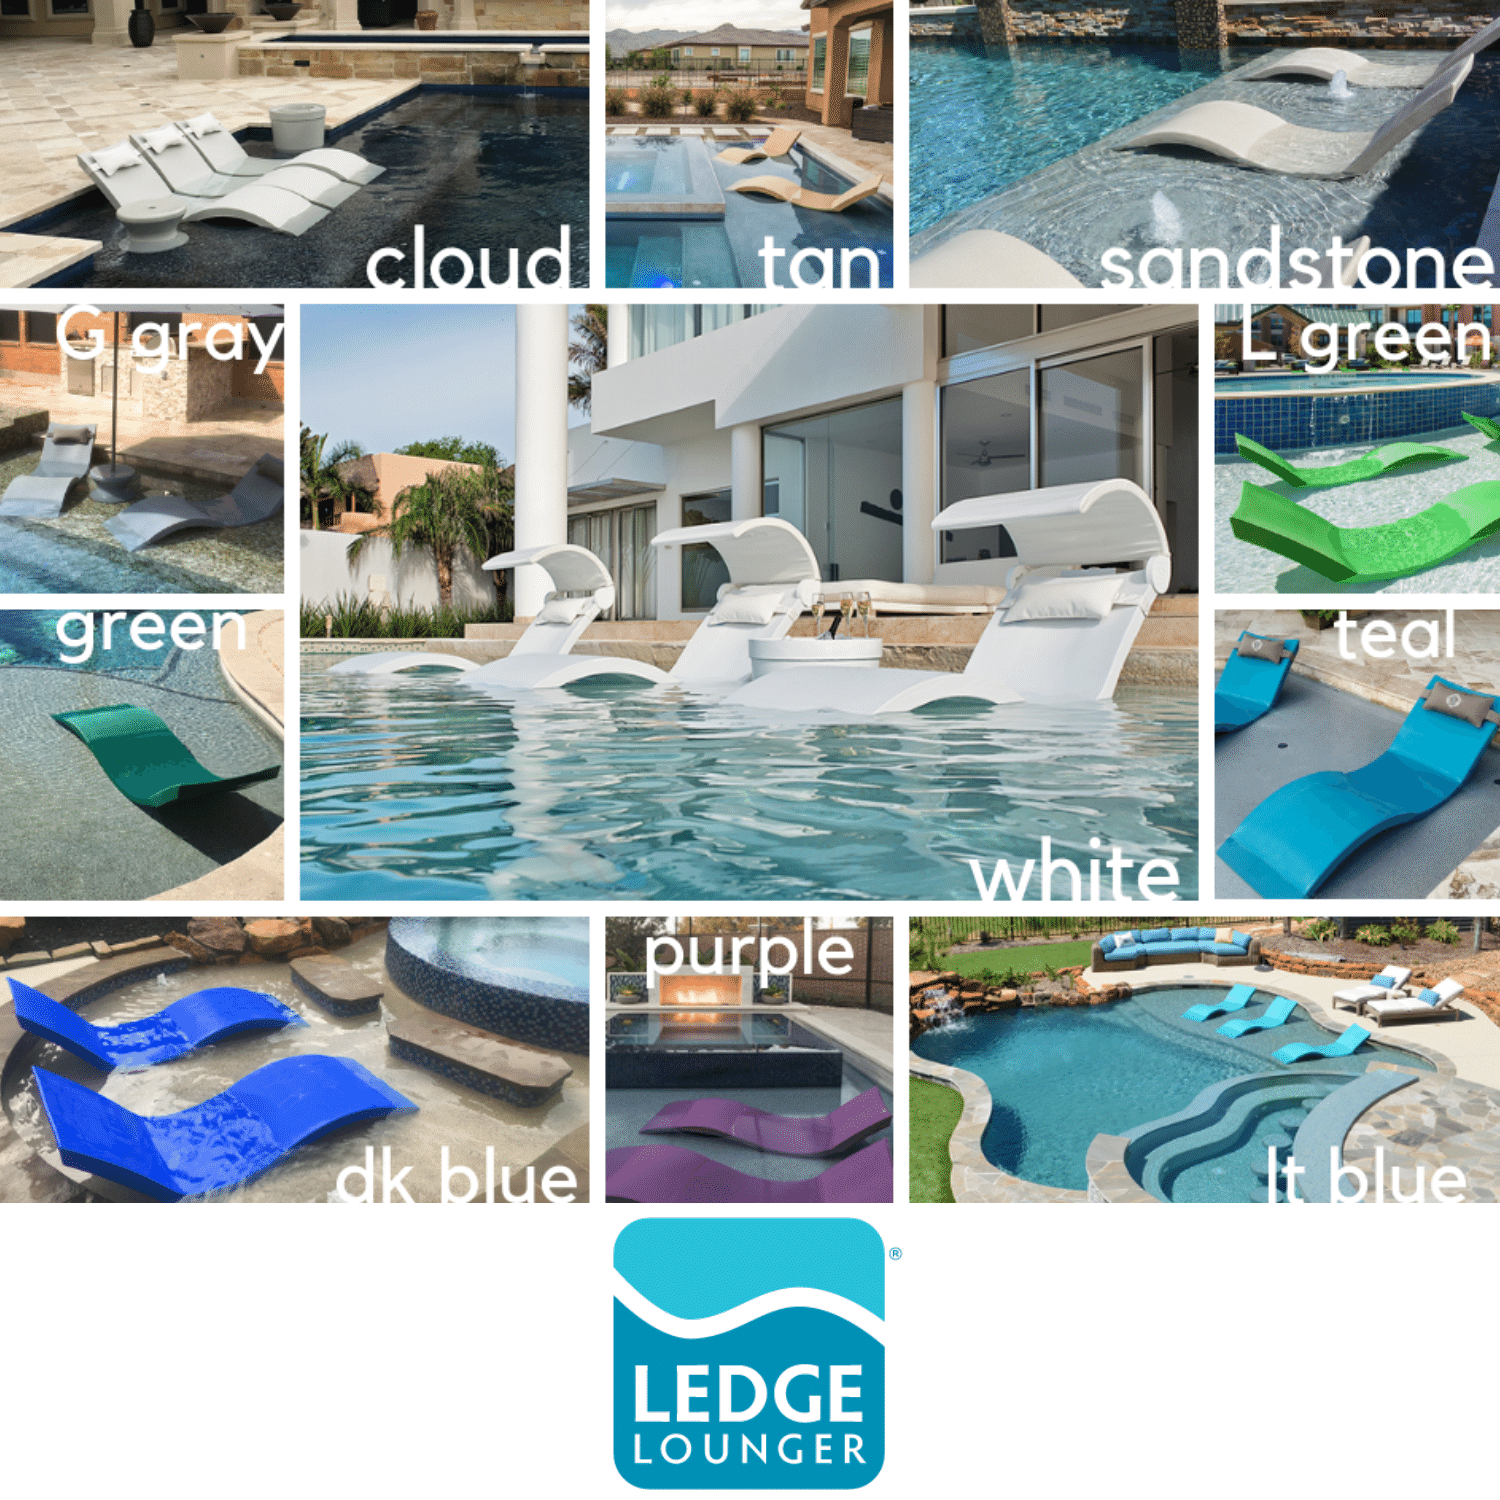 Ledge Lounger Pool Chaise Colors